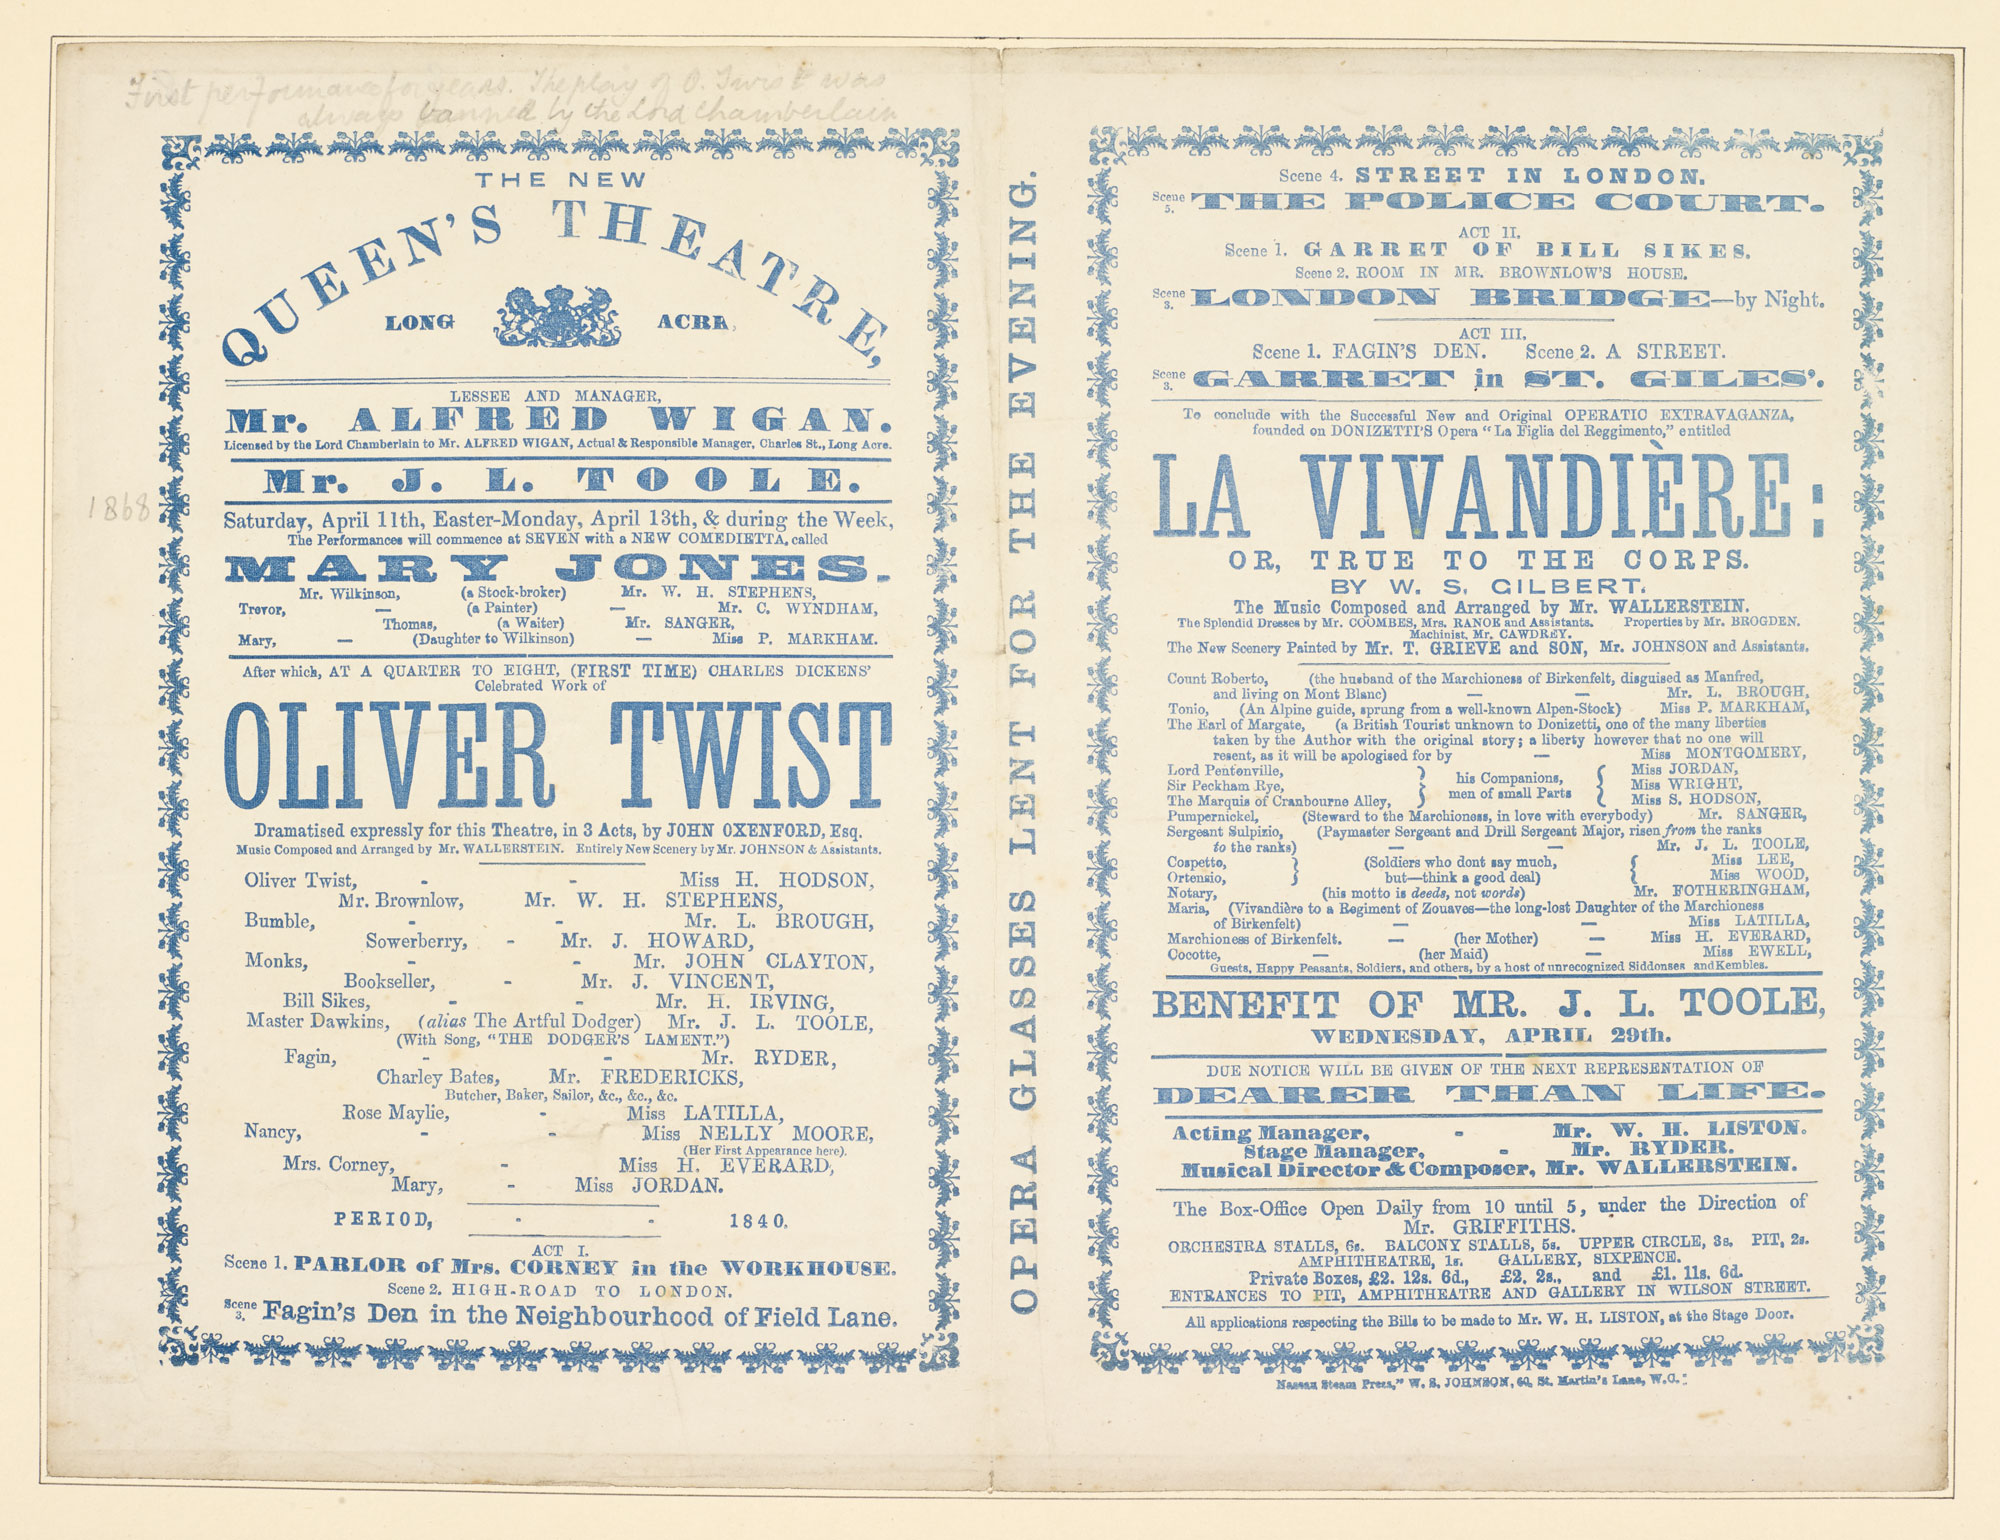 Program for The New Queen's Theatre advertising 'Oliver Twist' [page: 102]